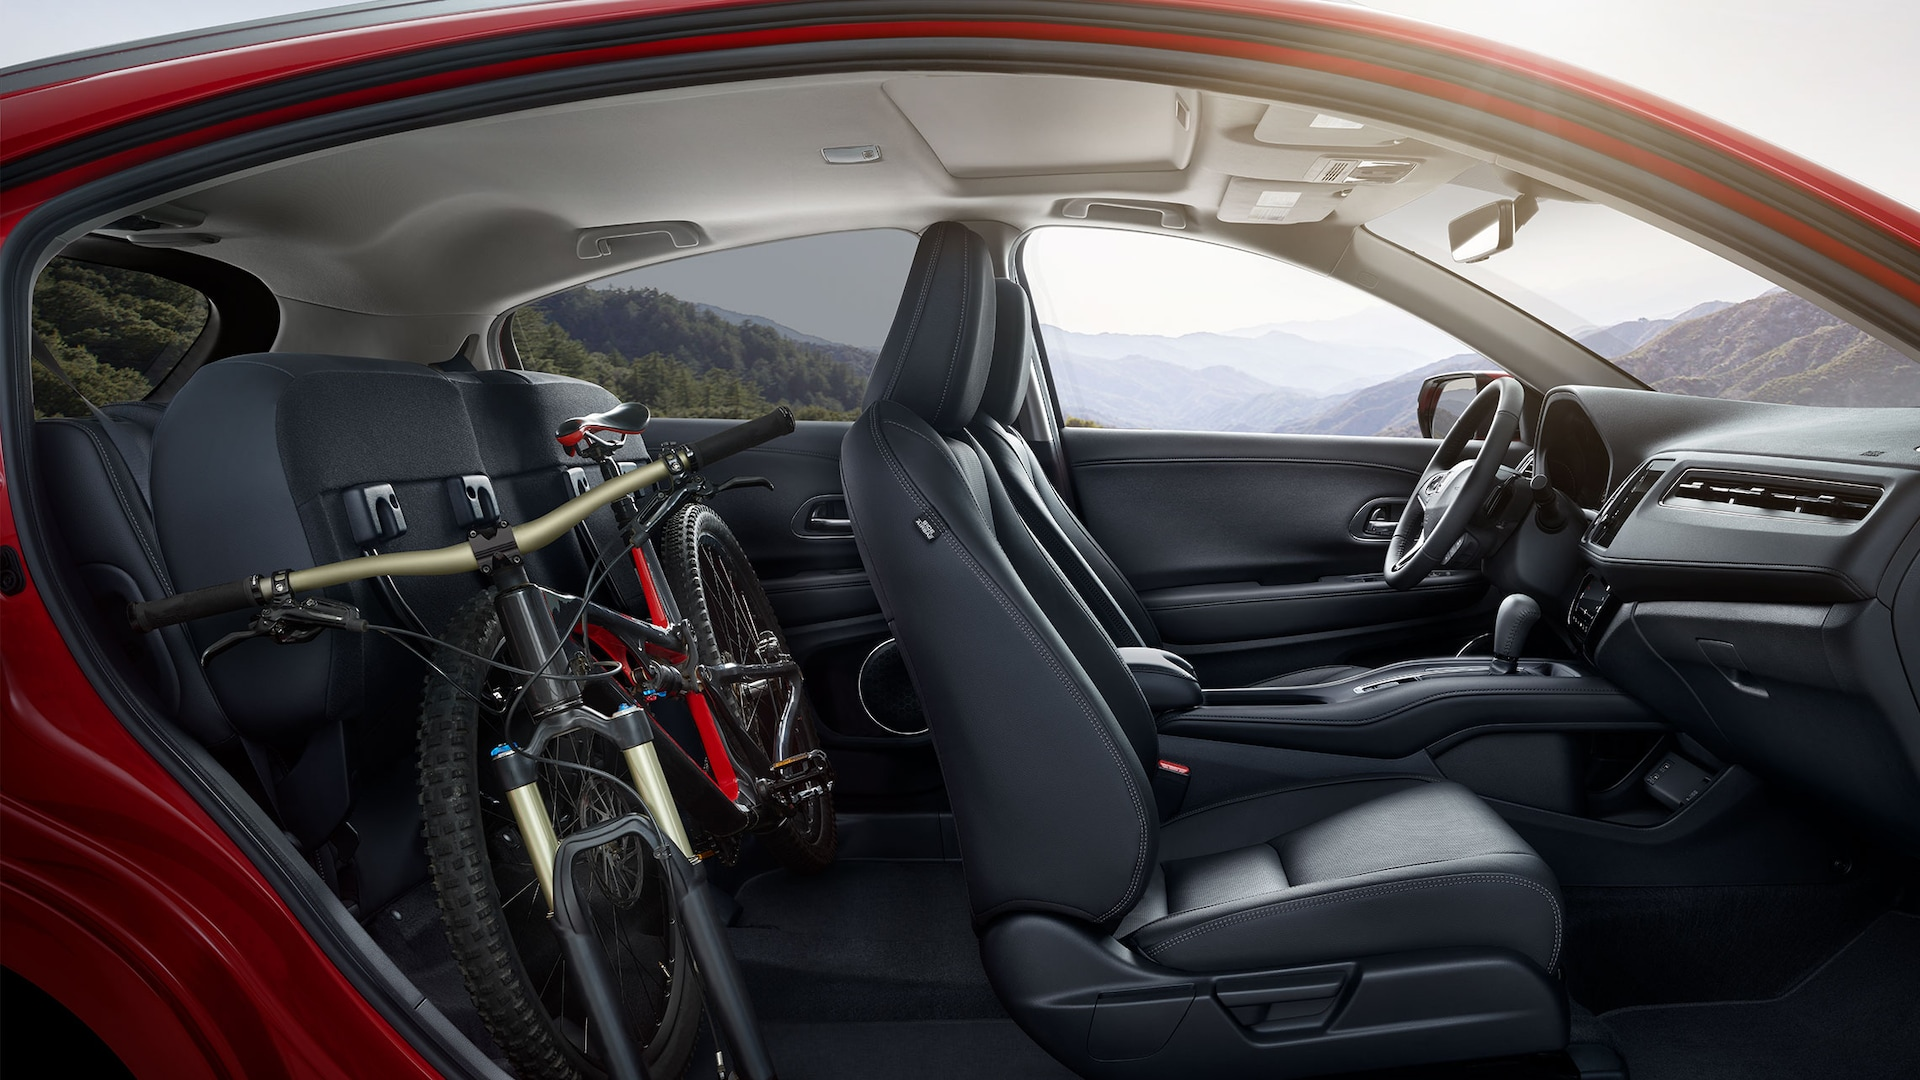 Interior passenger's side view of the 2019 Honda HR-V Touring in Black Leather with folded rear seats stowing a bike.